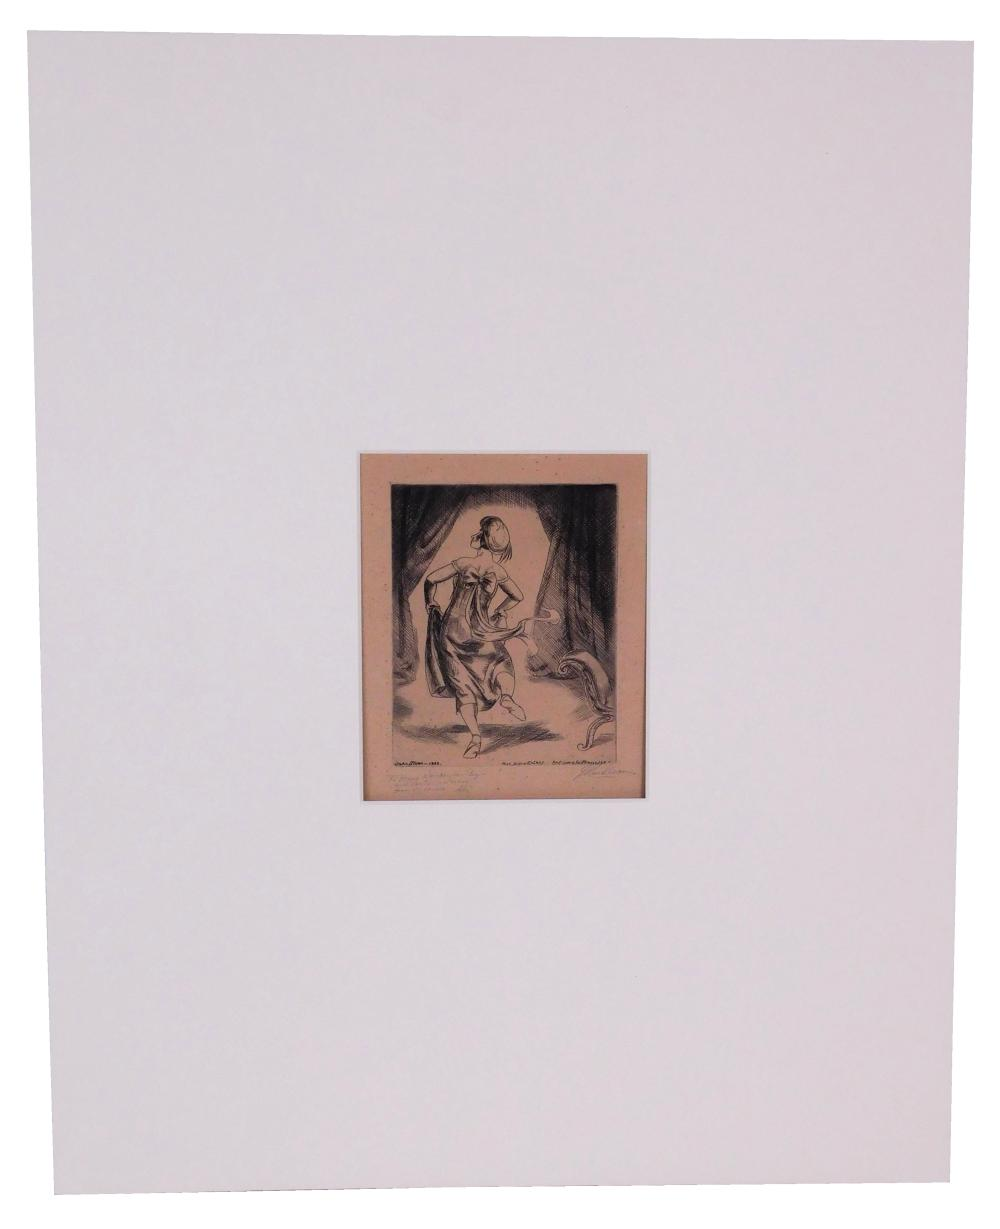 """John Sloan (American, 1871-1951), """"Antique à la Française"""", unframed etching, 1929, Morse 240, only state, Ed: 100 - of which 75 wer..."""